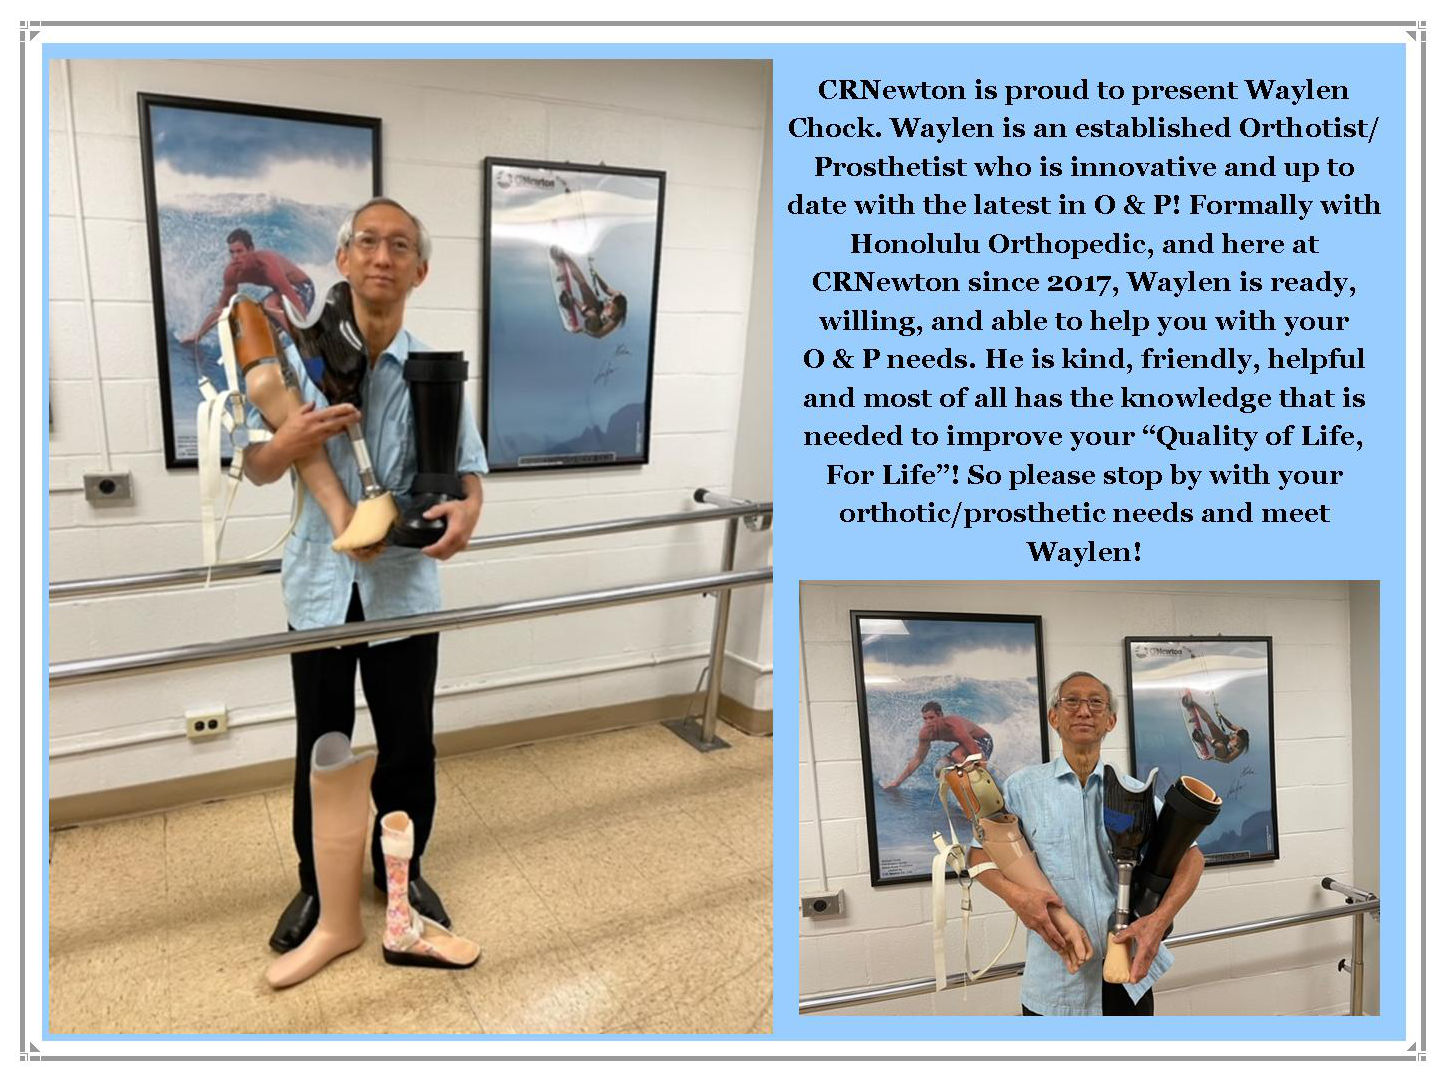 CR Newton is proud to present Waylen Chock and established Orthotist / Prosthetist